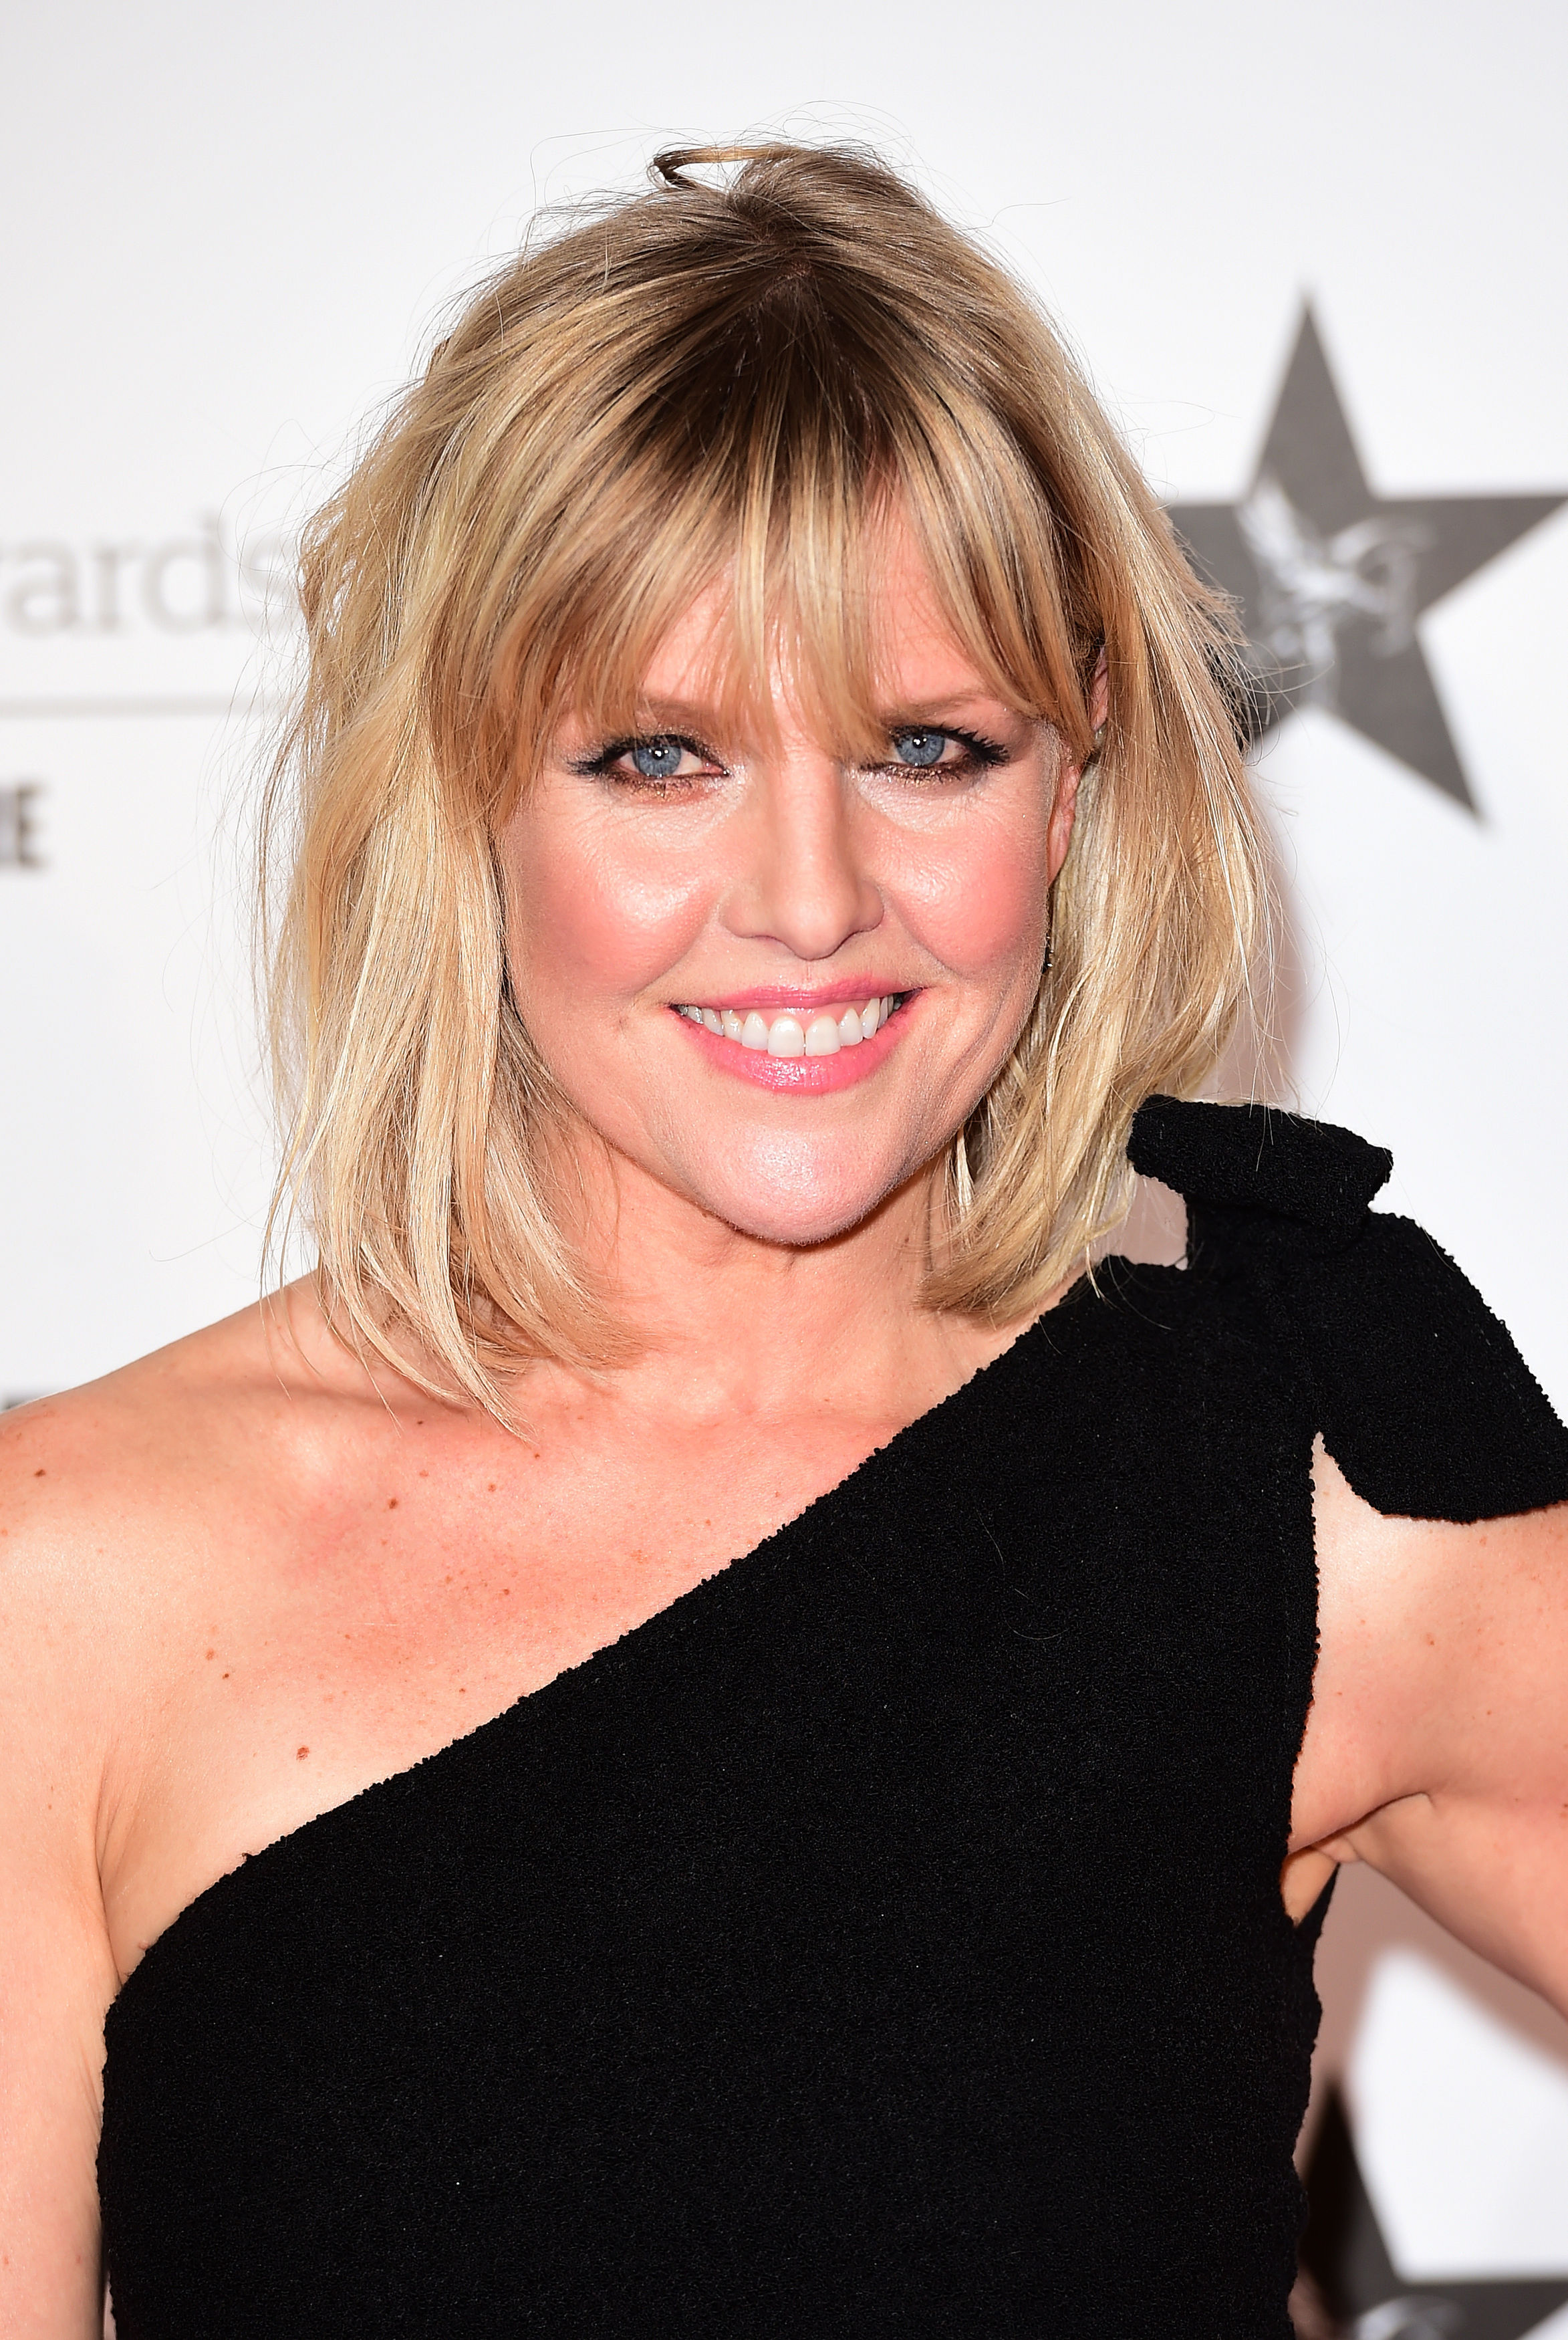 DEVASTATED: TV star, Ashley Jensen